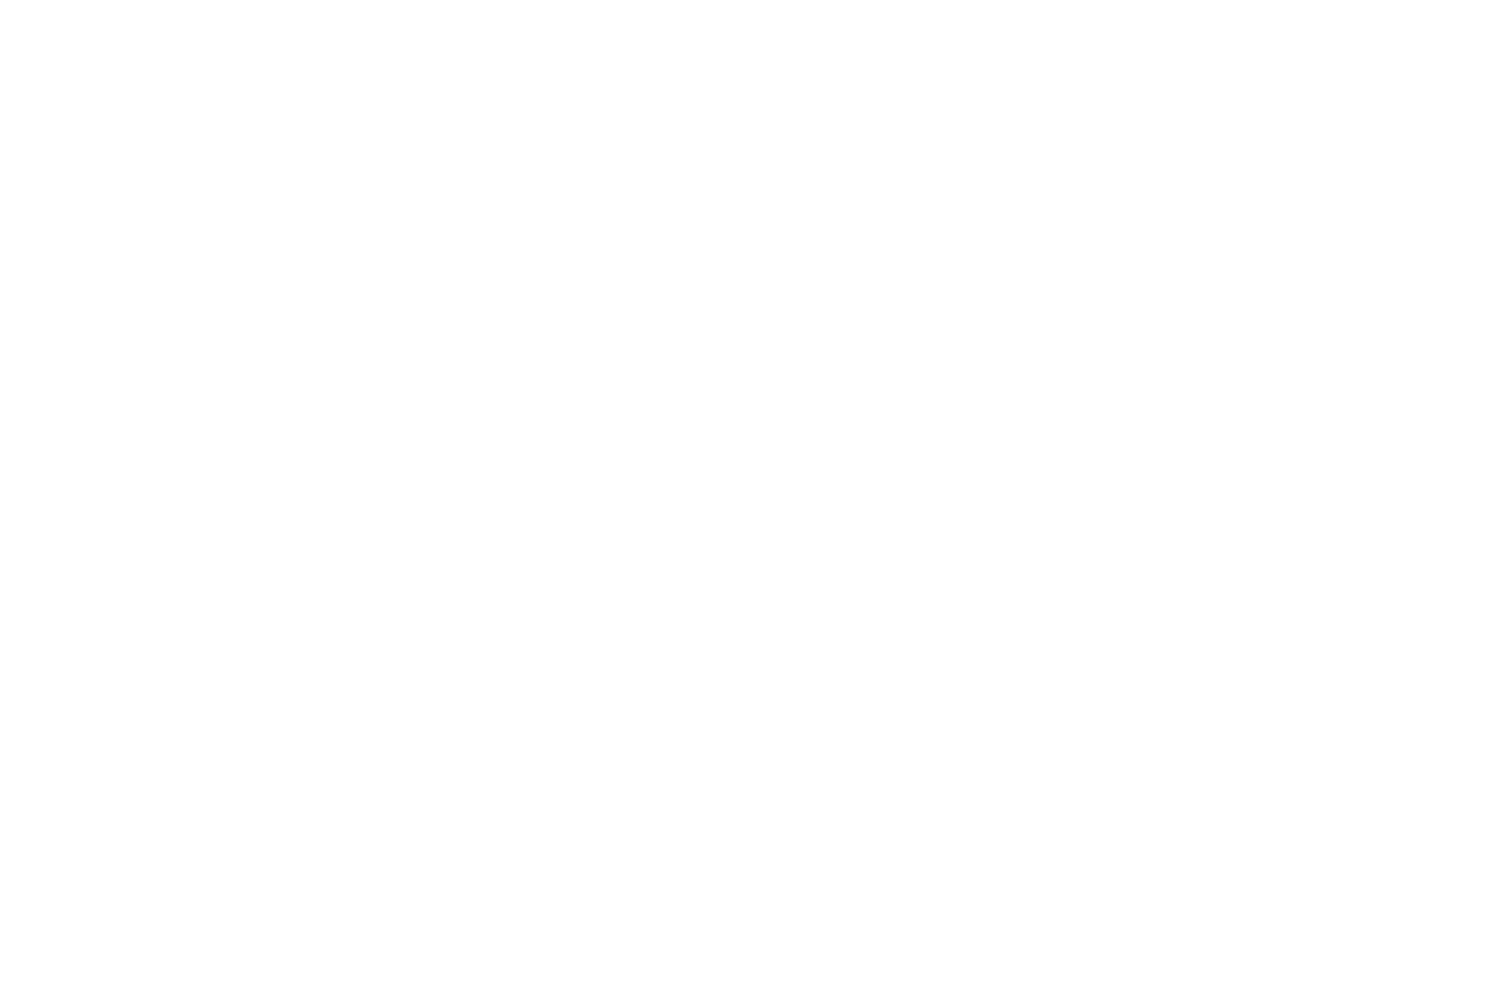 coda|room audio